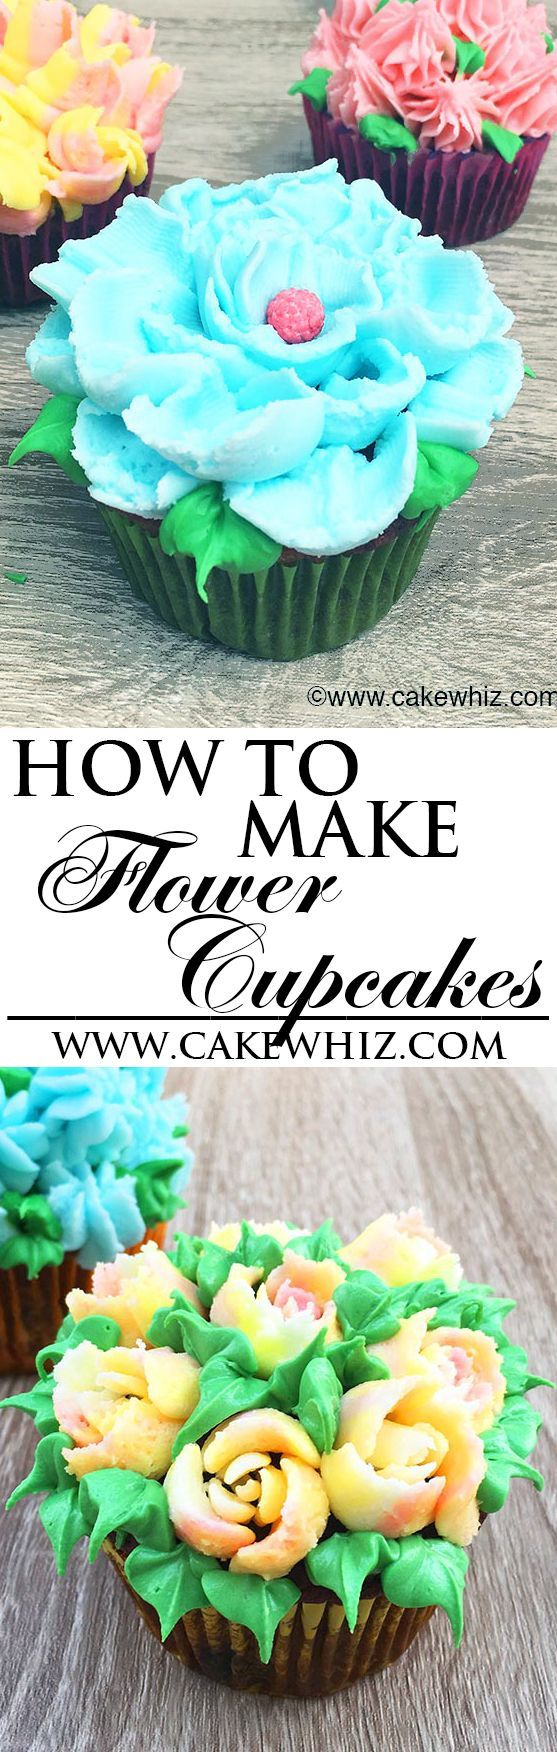 Learn how to make beautiful buttercream frosting FLOWER CUPCAKES, using Russian piping tips. Easy cake decorating technique for beginners. {Ad} From cakewhiz.com